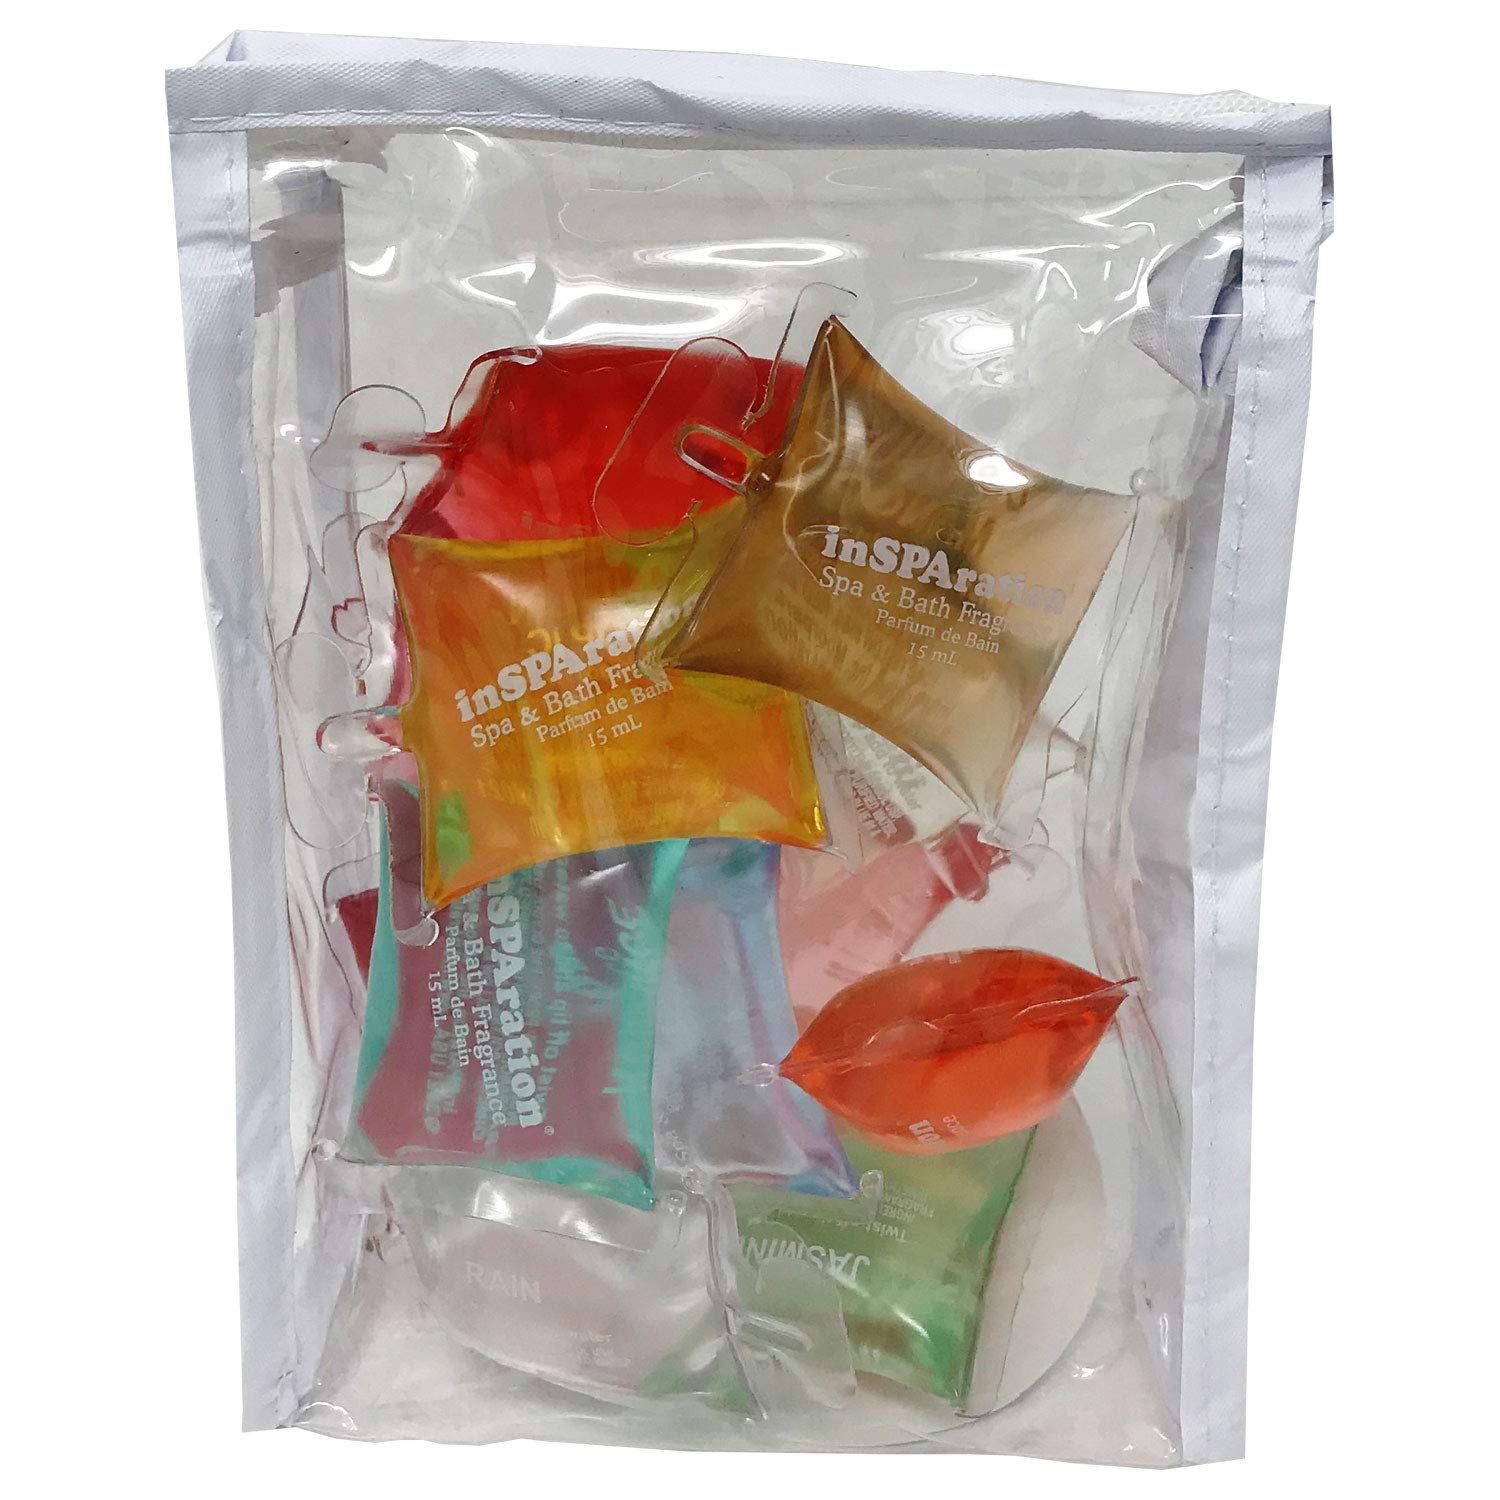 inSPAration Spa and Bath Aromatherapy Model# 151 Sample Gift Pack Bag, 1/2-Ounce by InSPAration